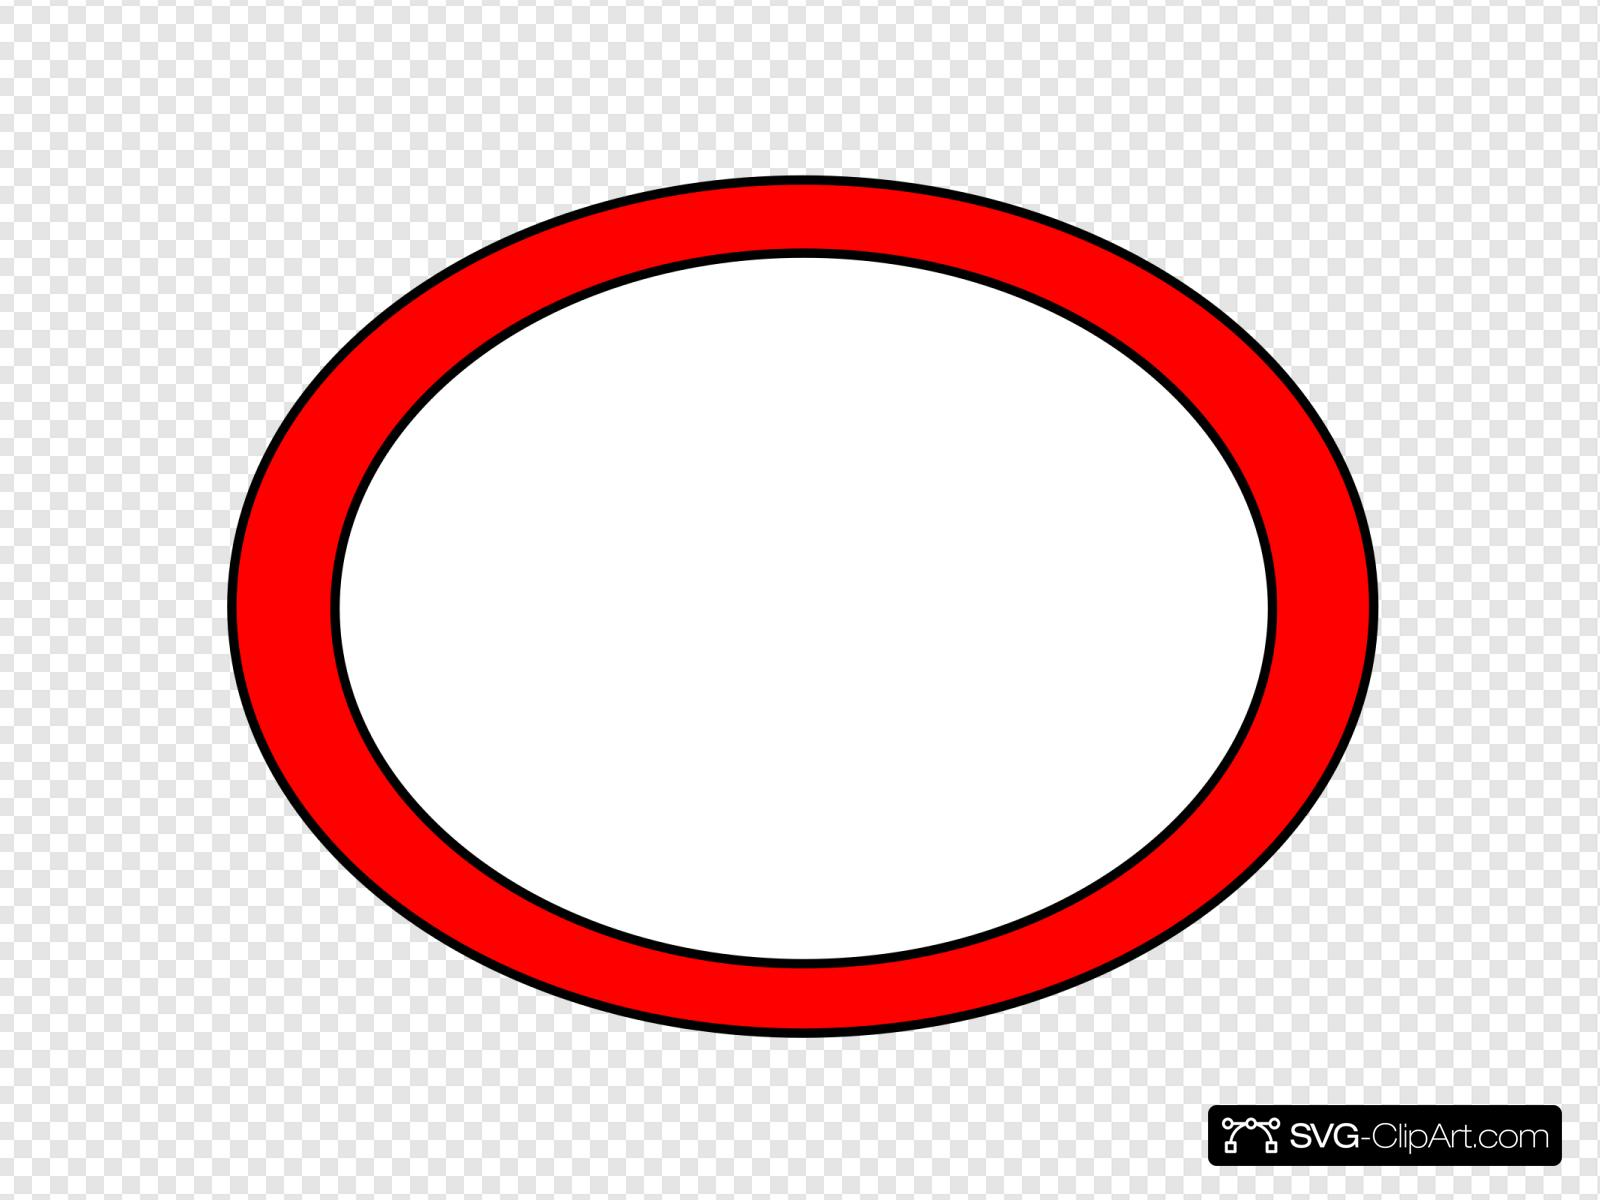 Red Border Pic Svg Vector Red Border Pic Clip Art Svg Clipart Pic svg has a very basic site, fairly clean and simple. svg clipart